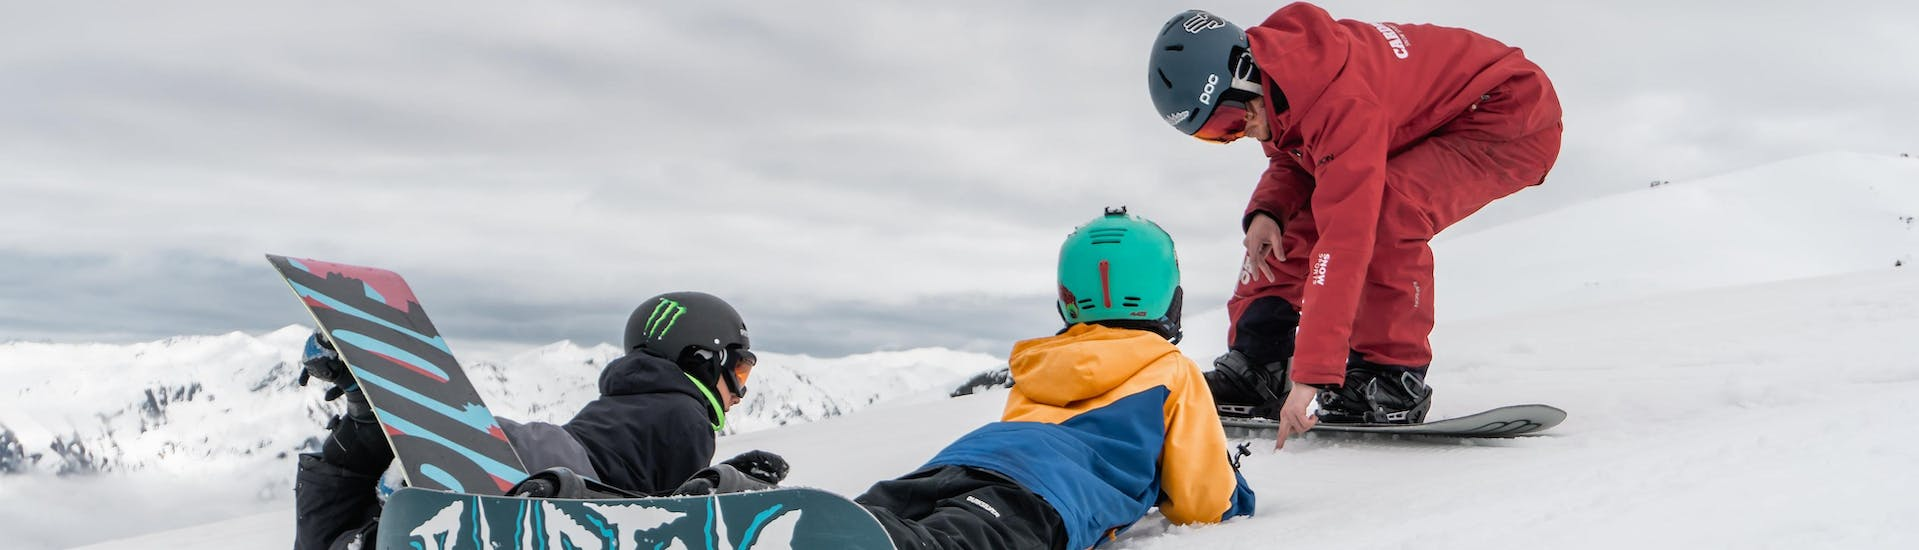 Snowboarding Lessons (7-17 years) - First Timer Package